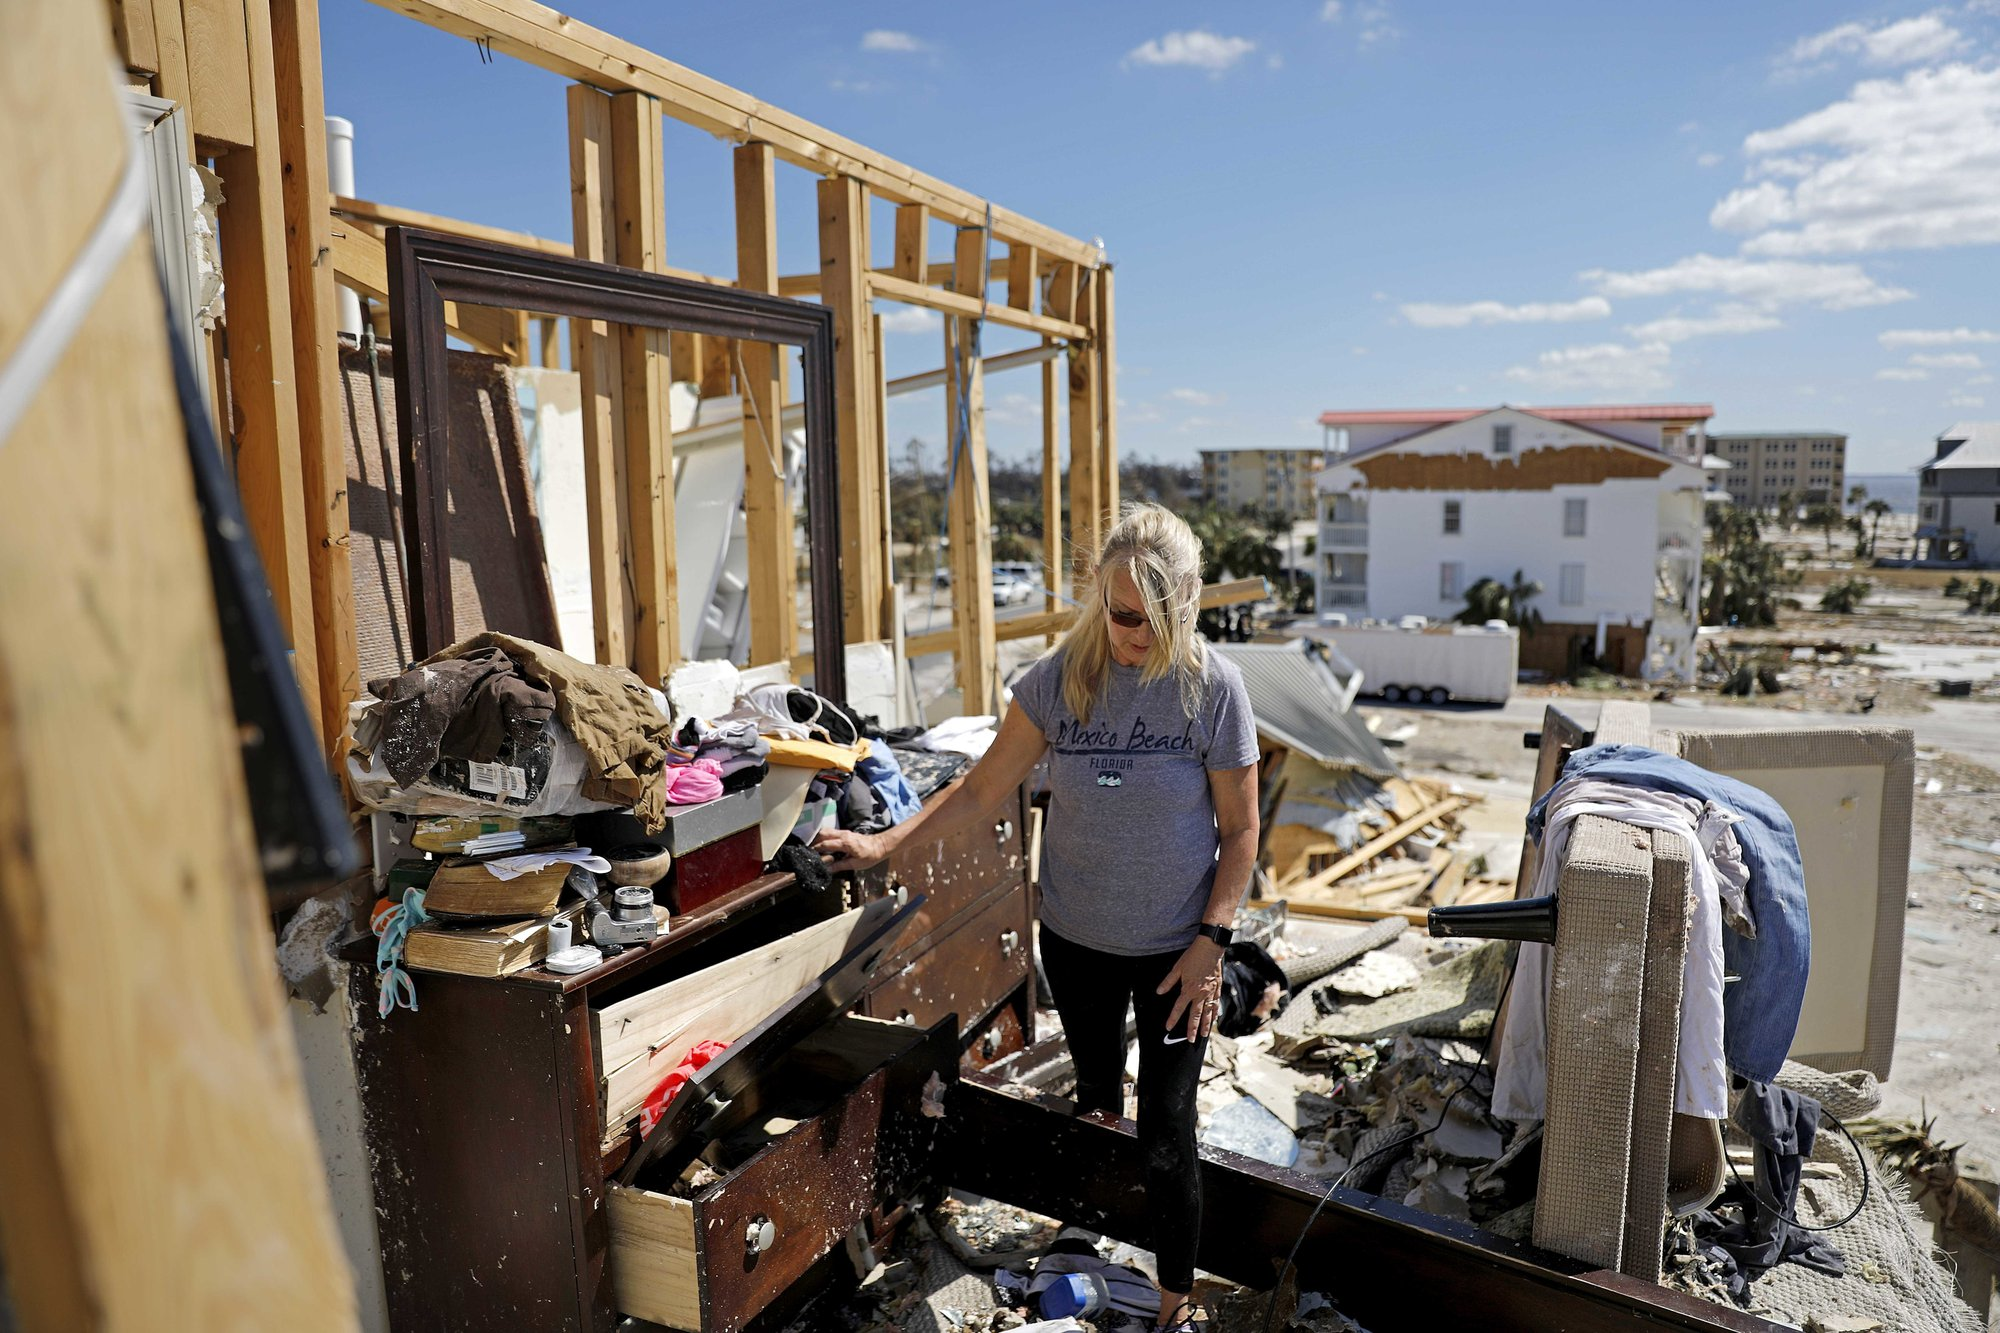 No cellphones, no gas: No end to misery in hurricane zone